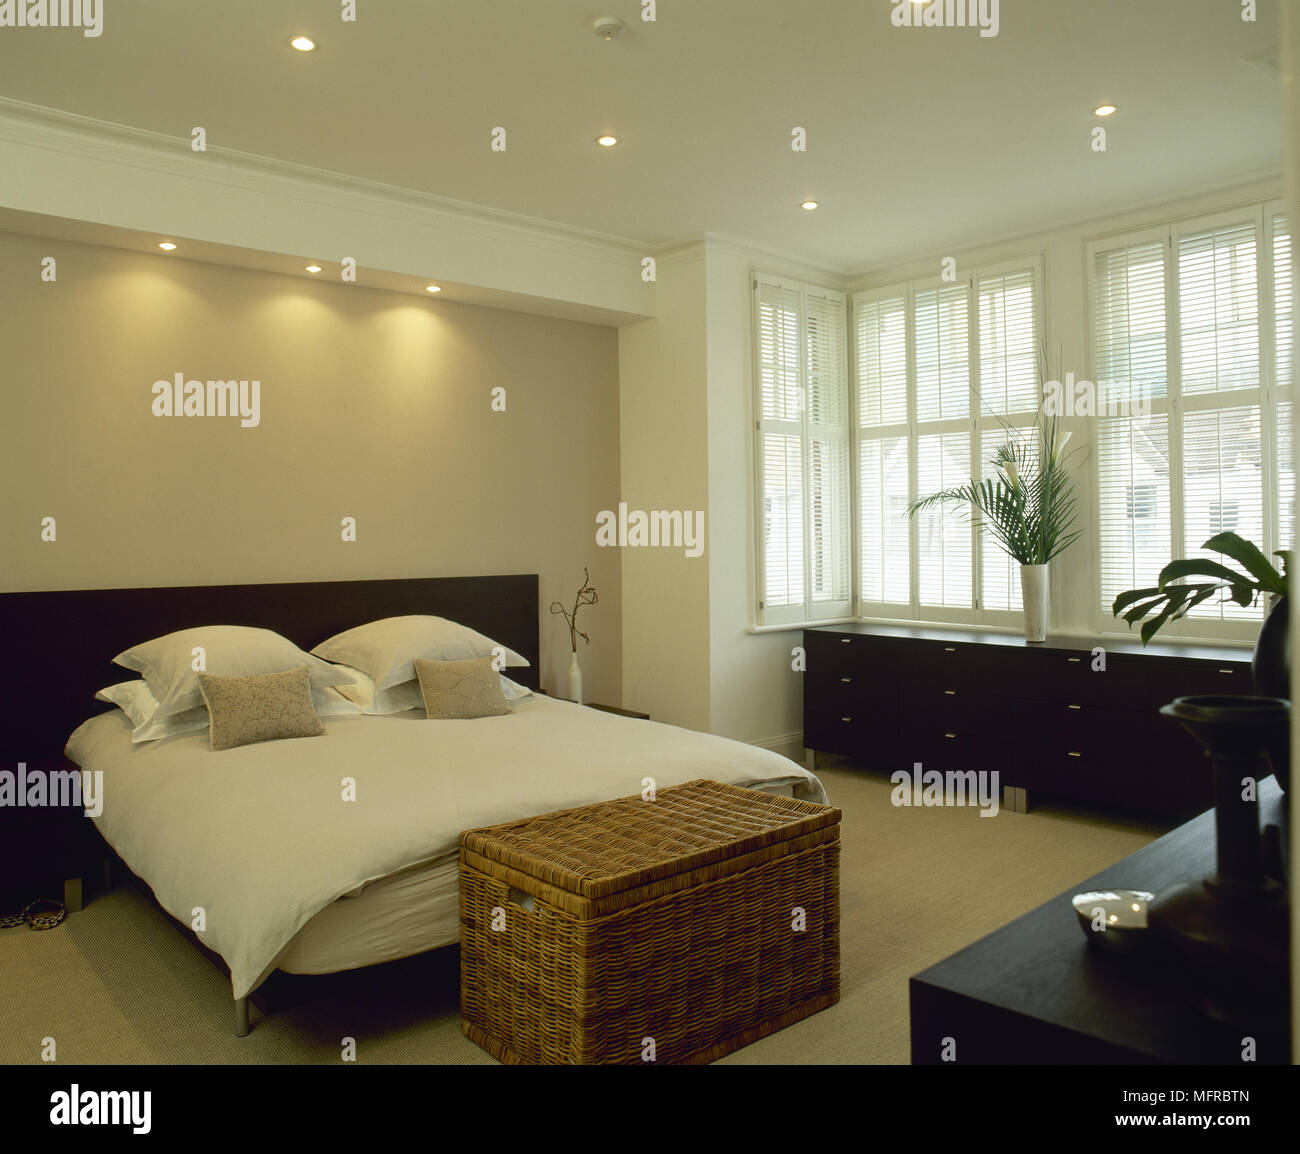 Modern Bedroom With Double Bed, Black Wood Furnishings, Recessed Lighting,  And Bay Window.